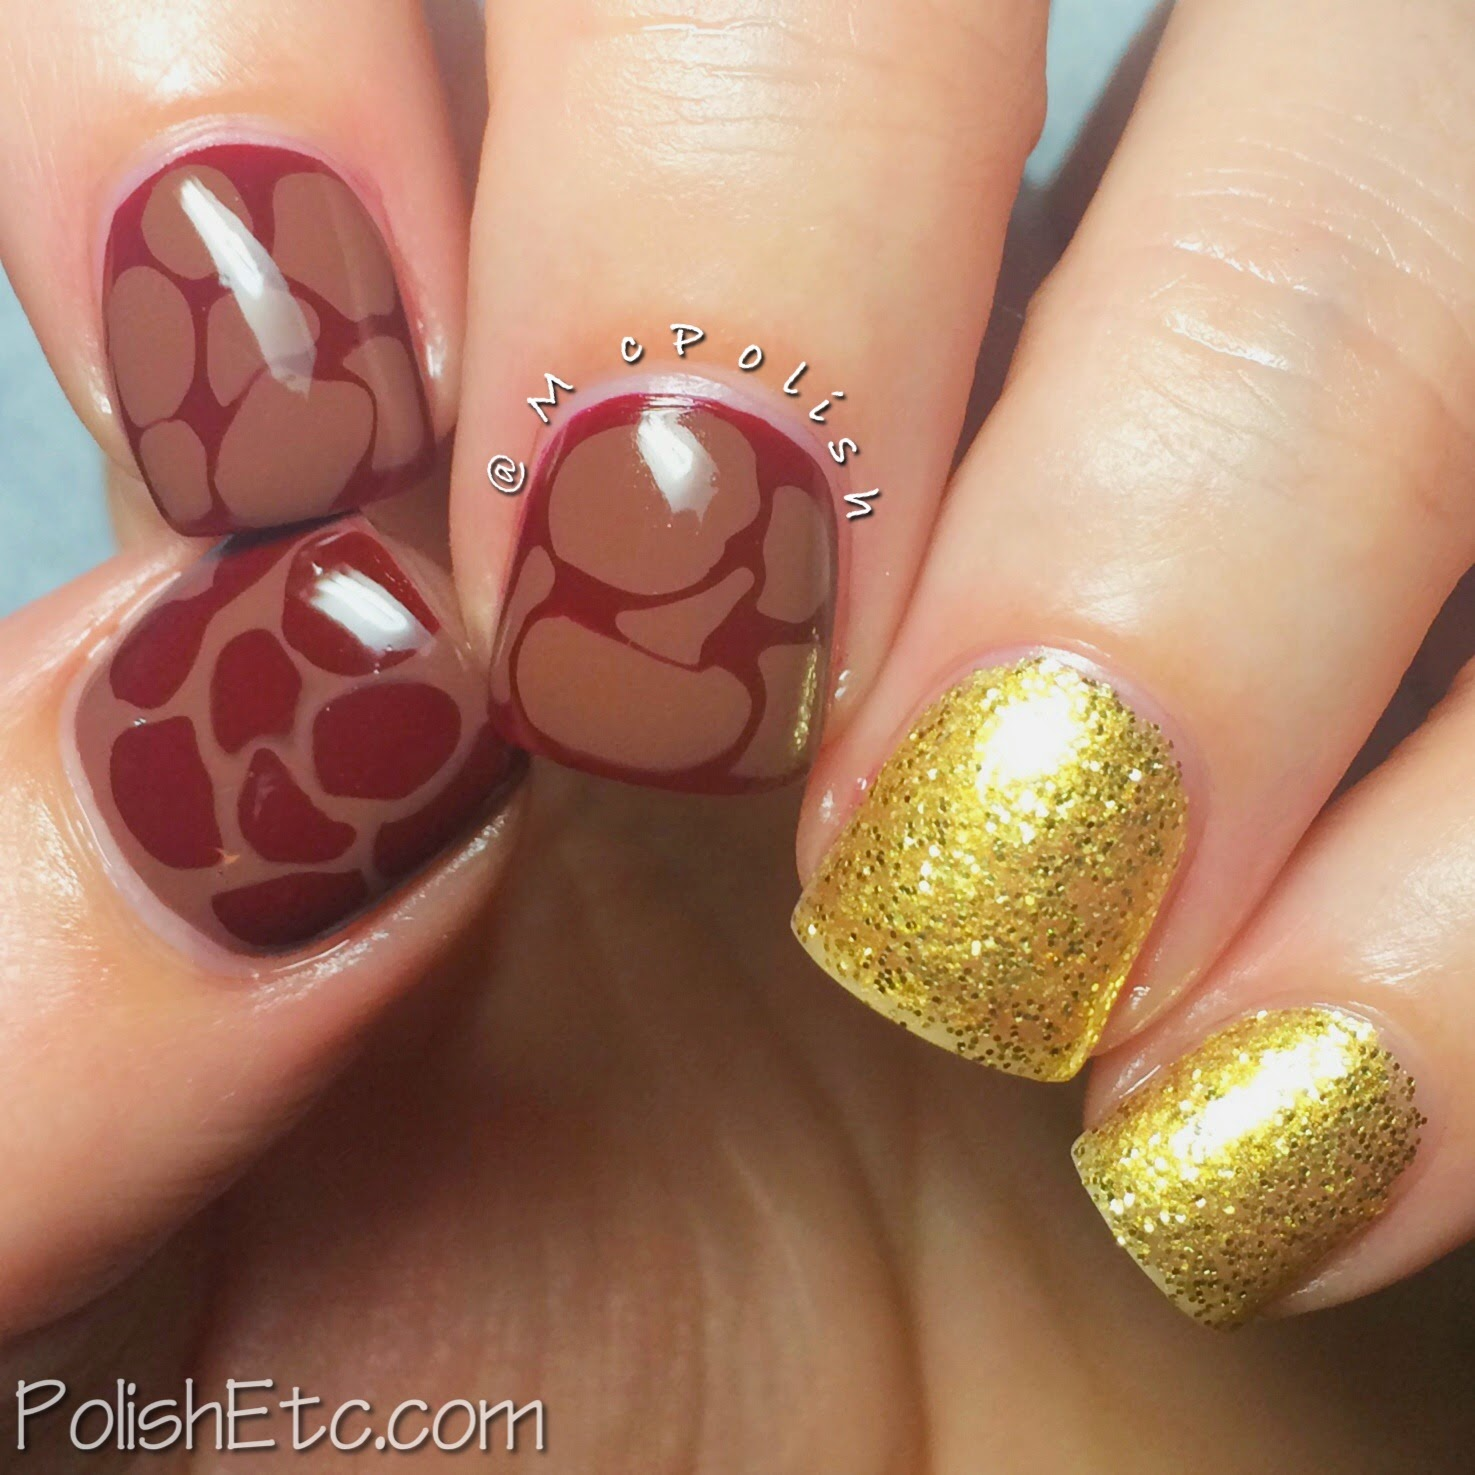 31 Day Nail Art Challenge -#31dc2014 - McPolish - TUTORIAL